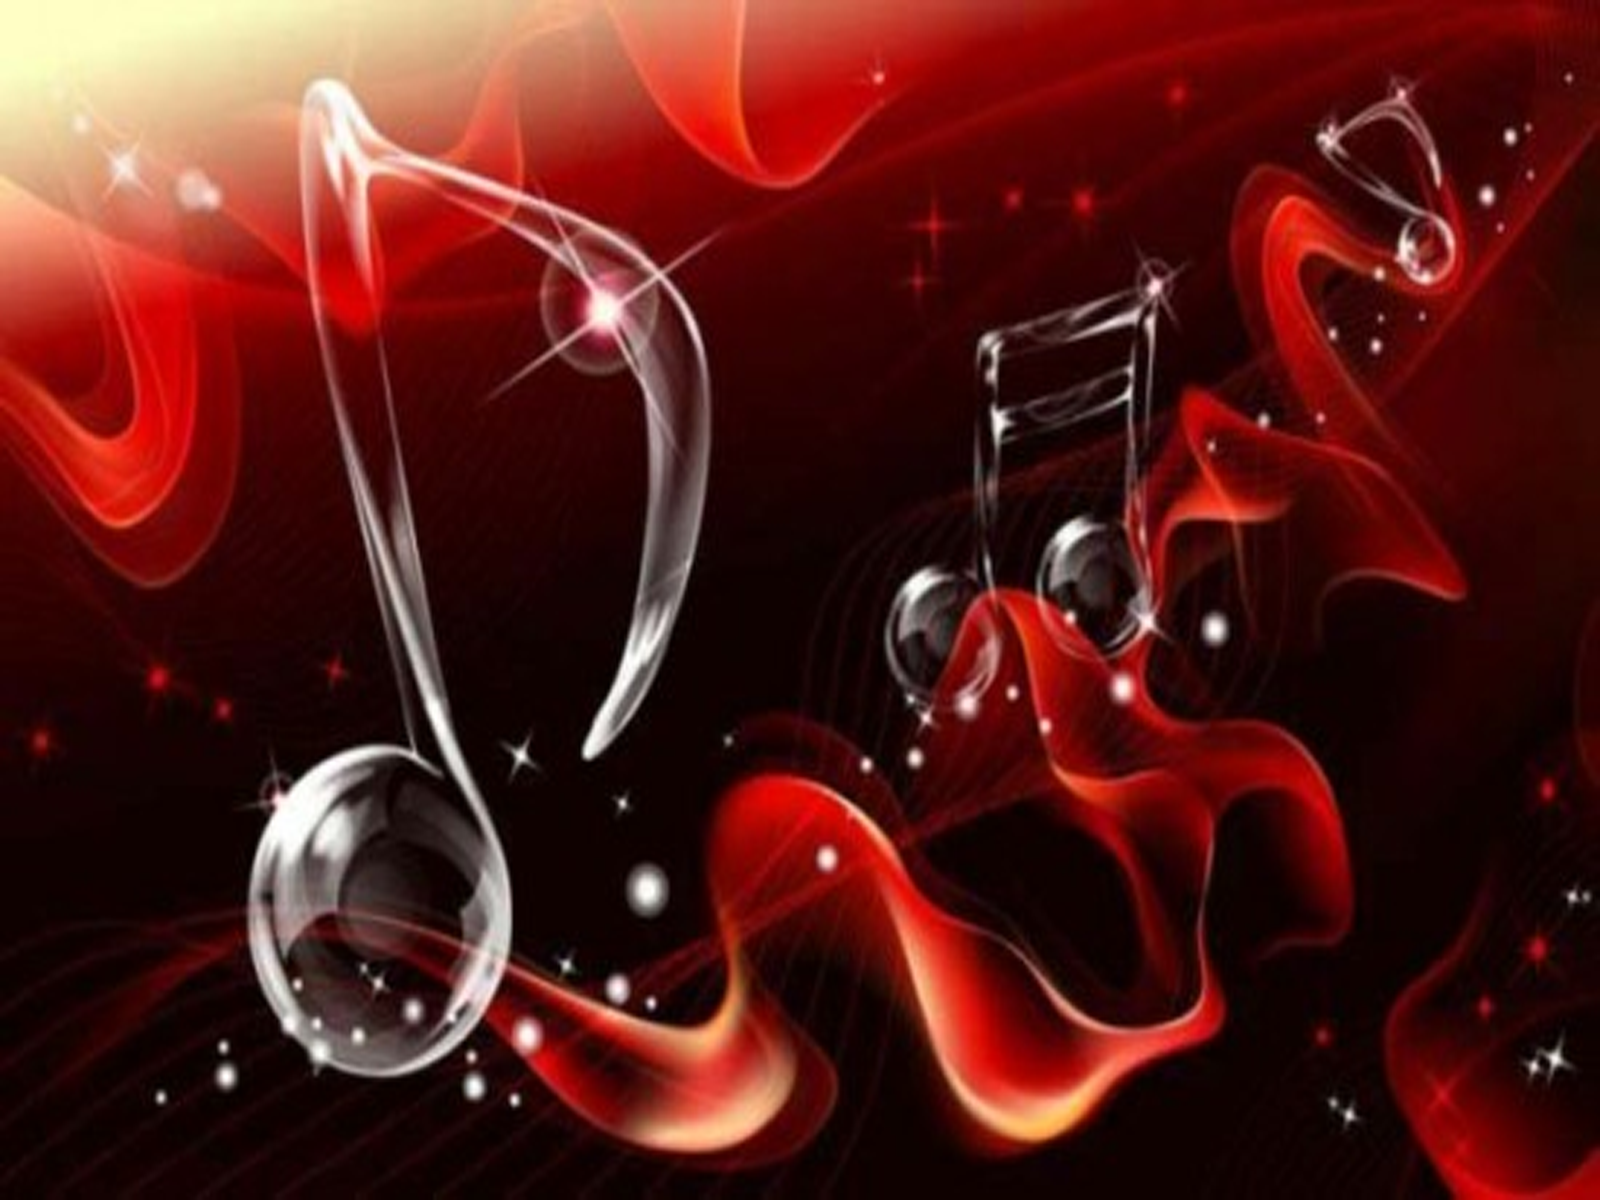 Popular Wallpaper Music Red - 5ce037ebea66f907e3a7a98080609b30  Pic_1353100.png